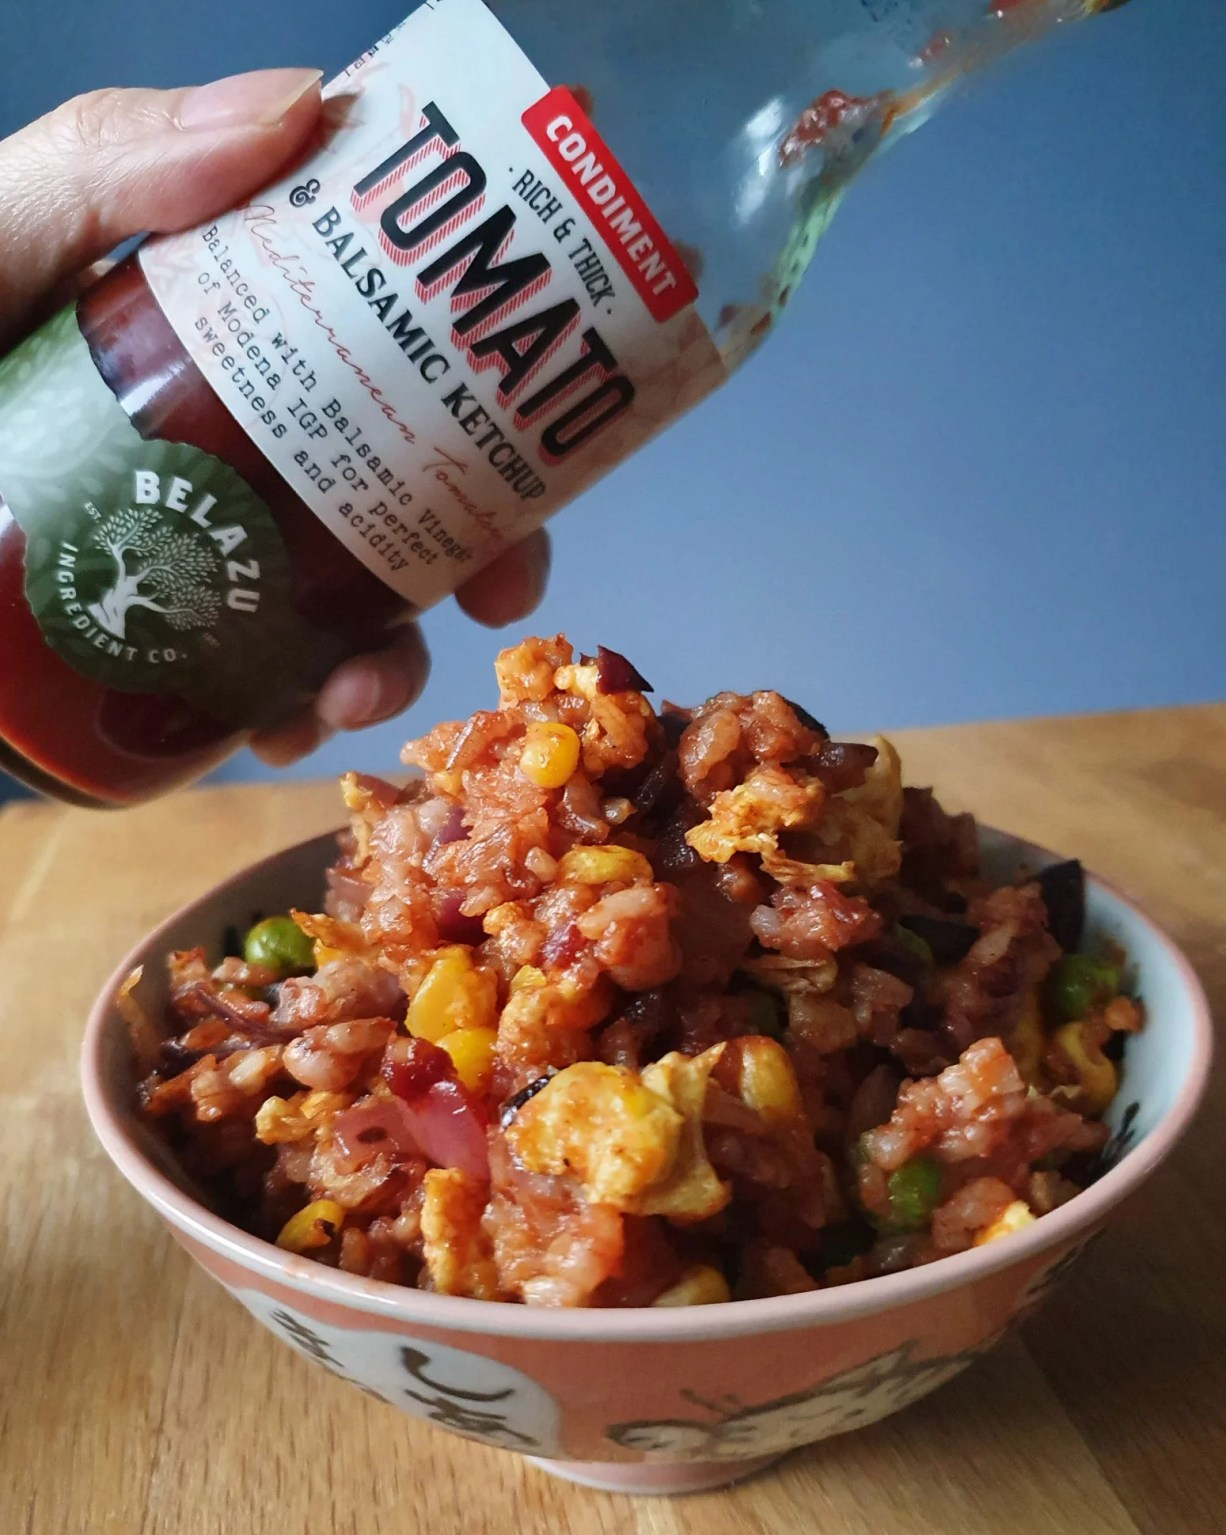 Belazhu tomato and balsamic vinegar ketchup with fried rice